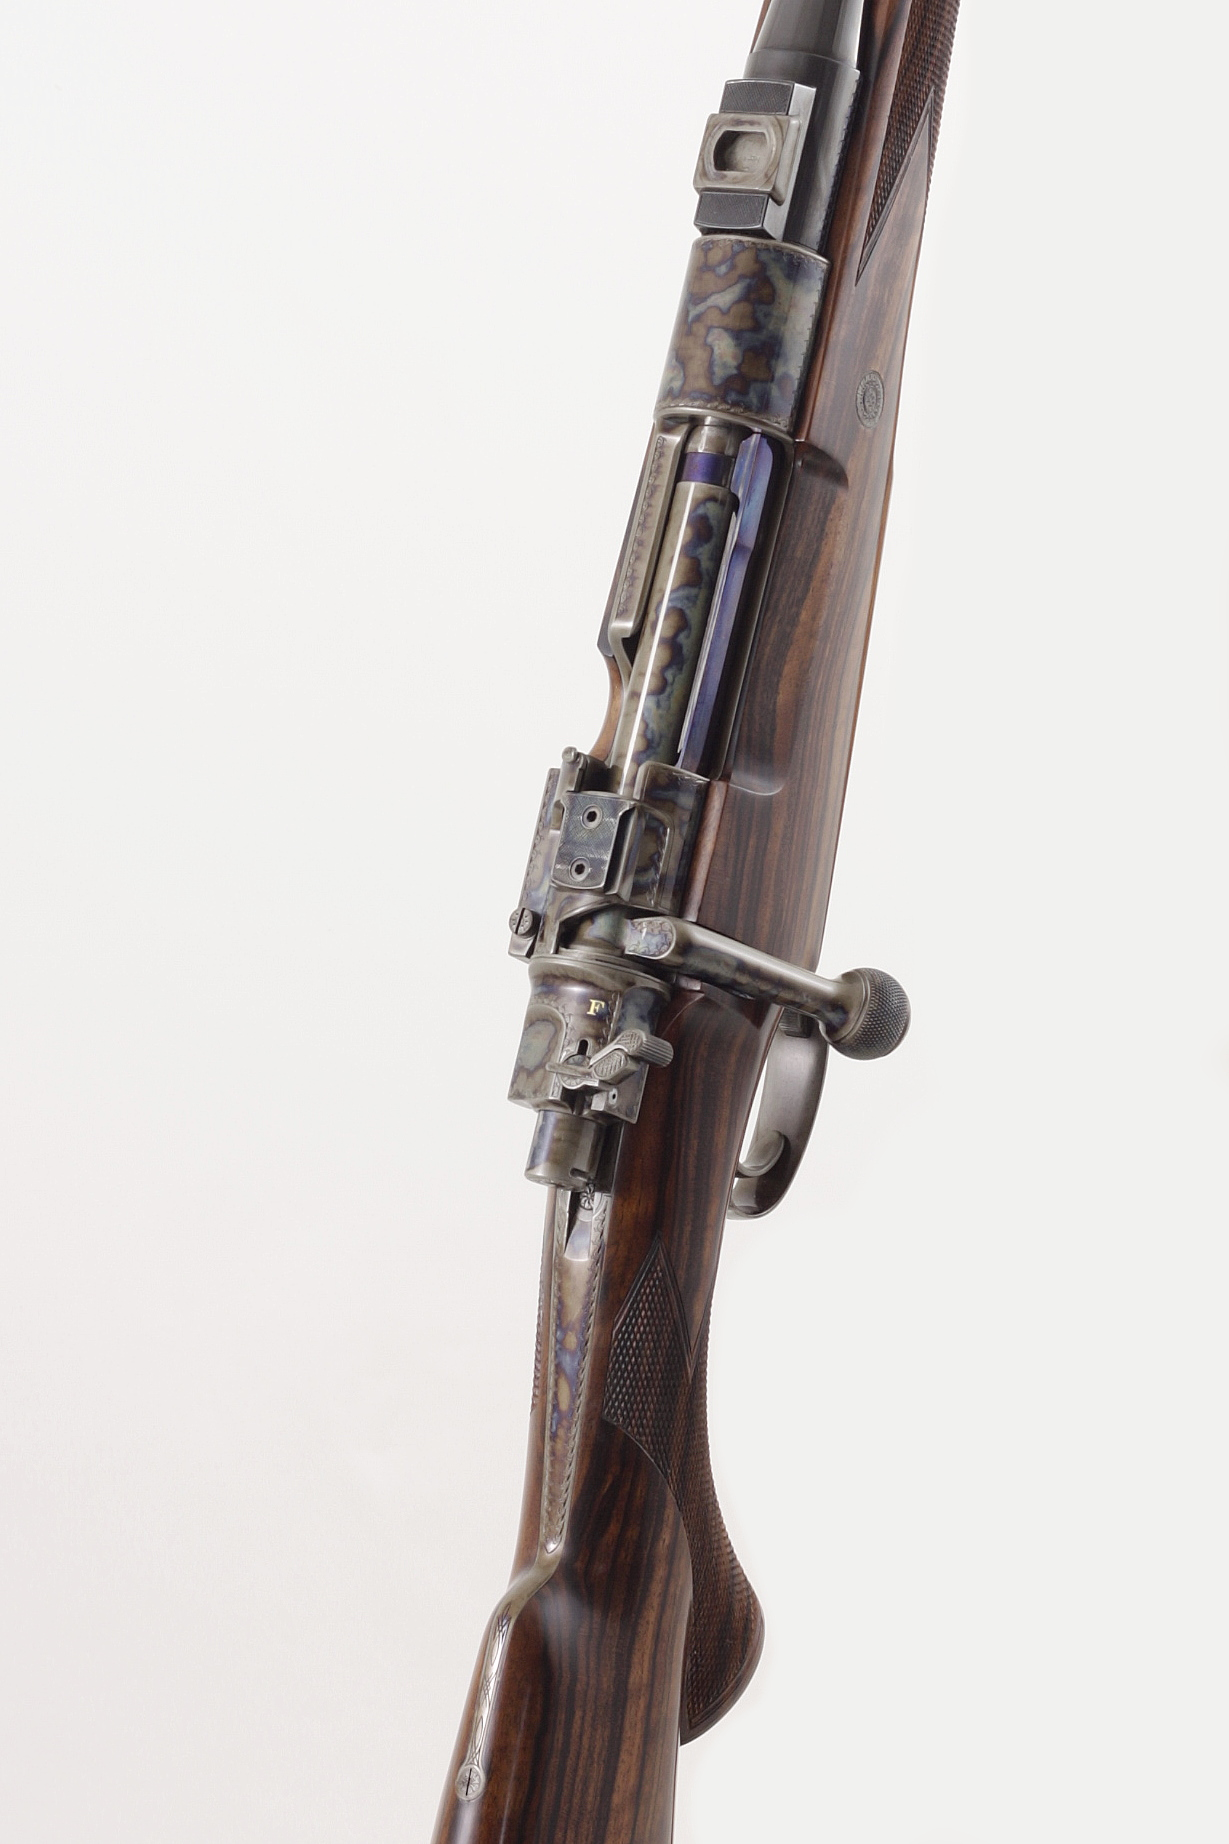 [Translate to en:] Schiller Mauser Repetierer 8x68 Leutershausen Waffen